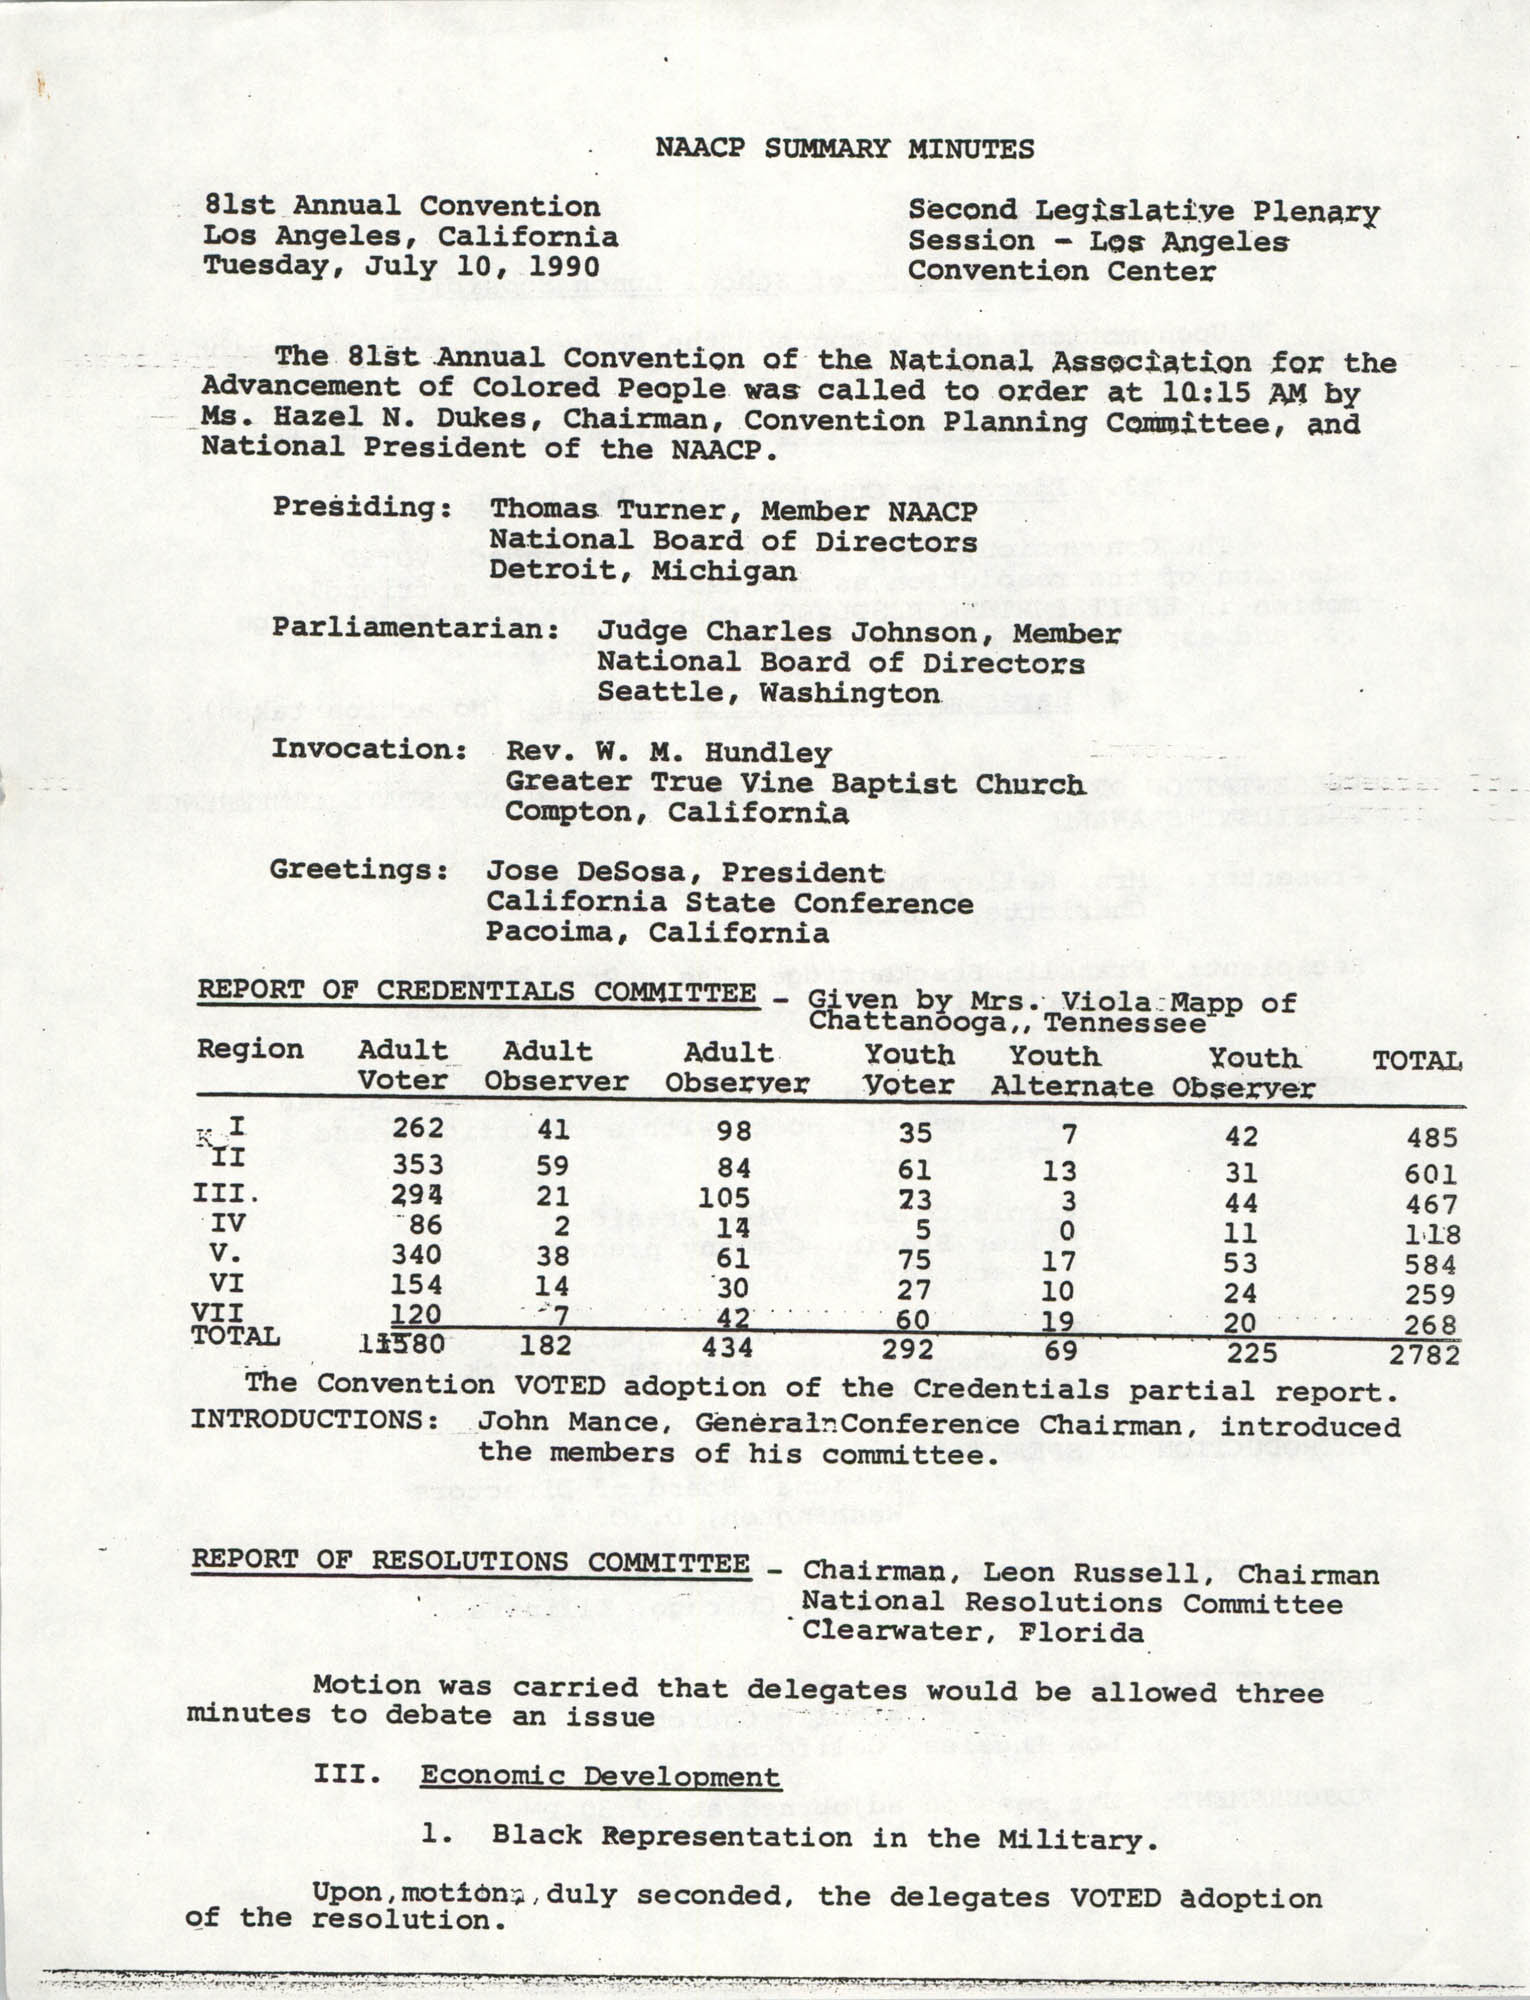 NAACP Summary Minutes, July 10, 1990